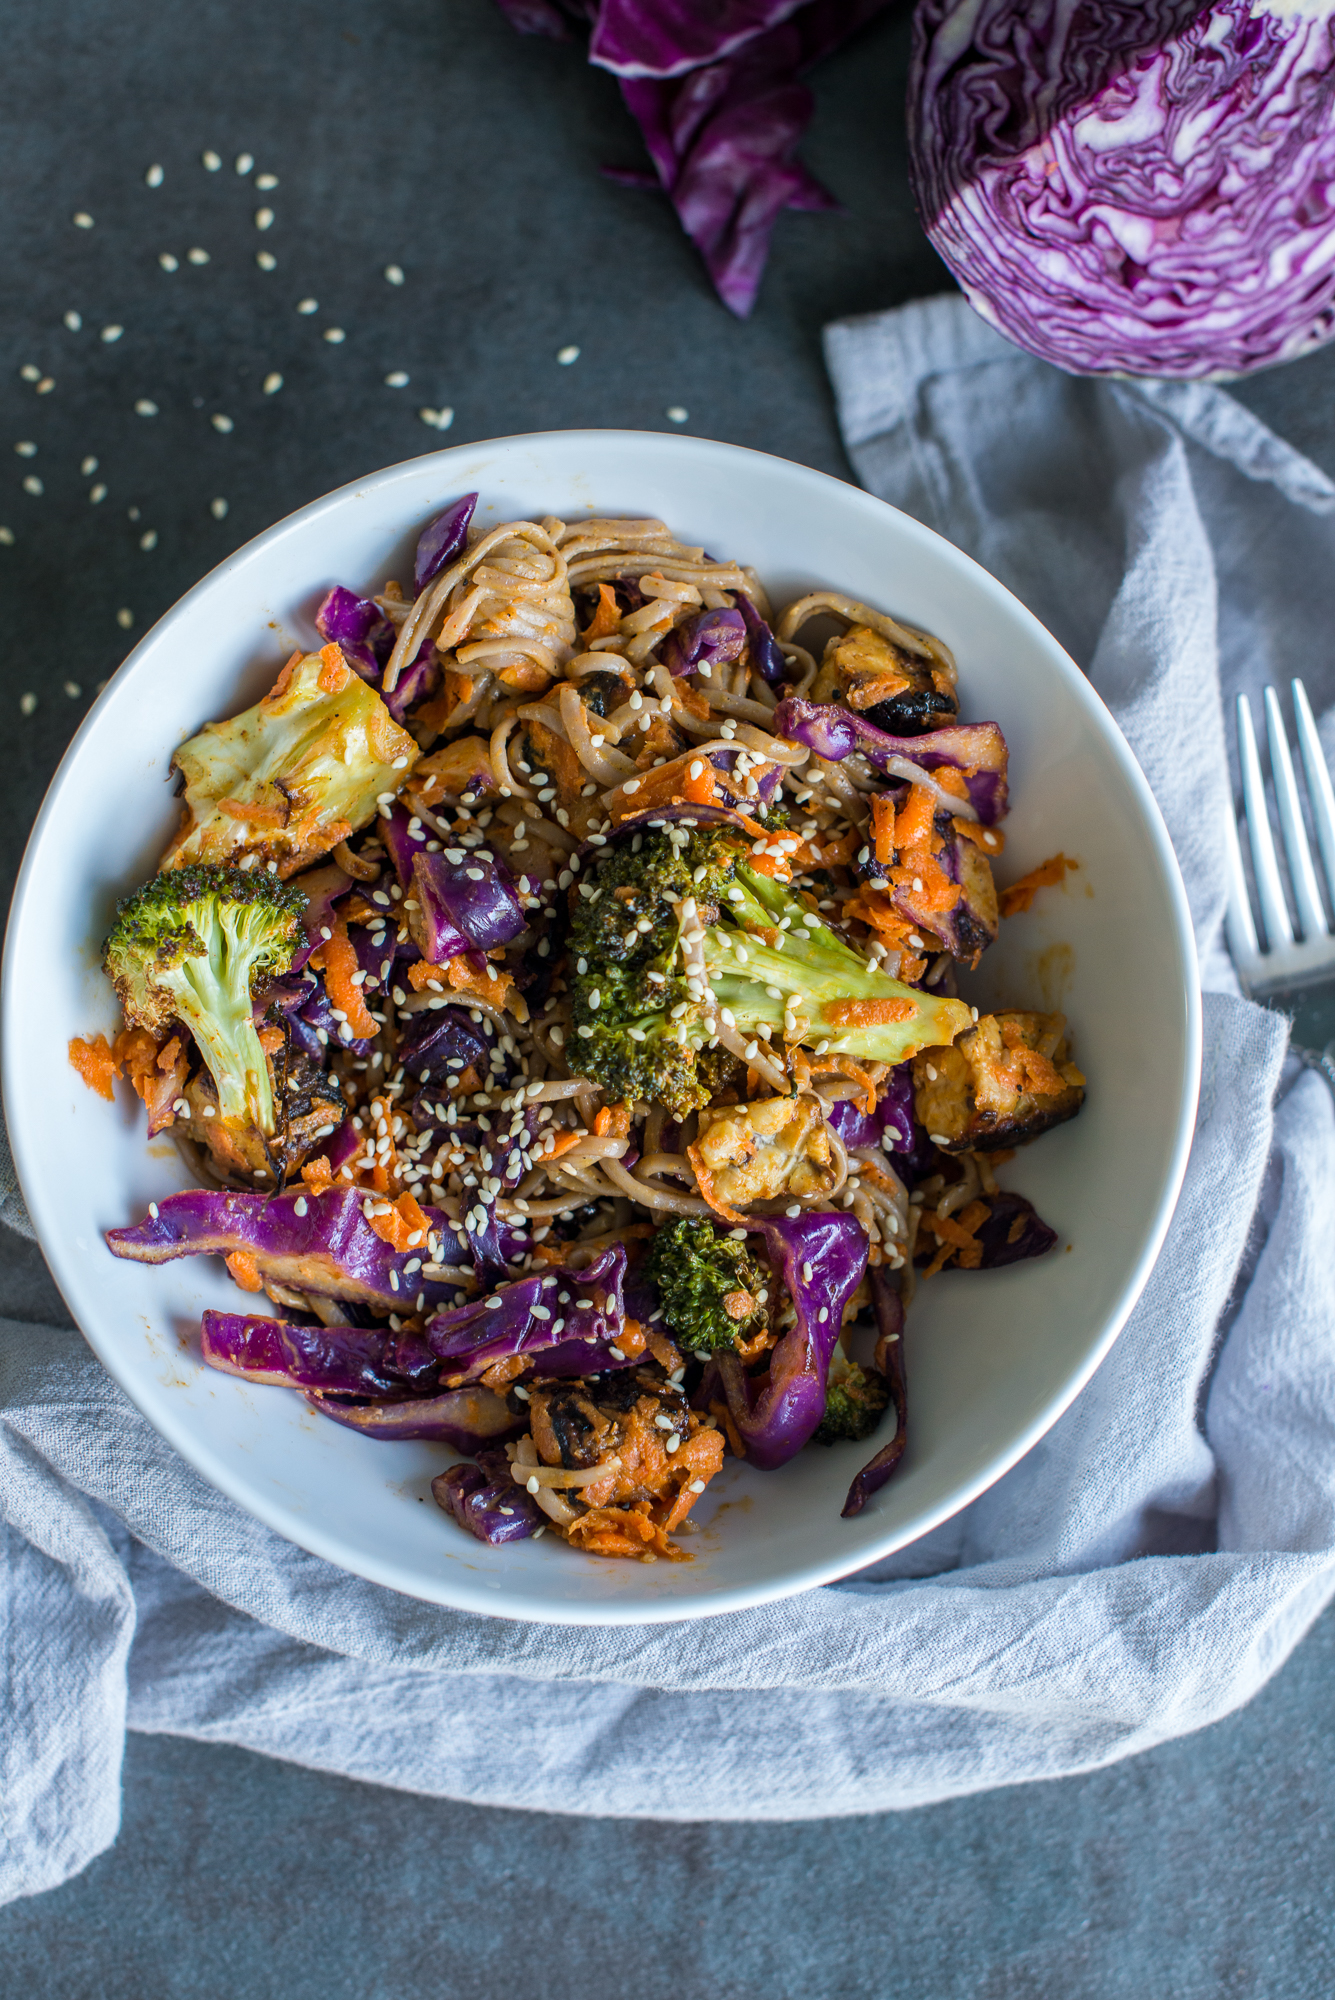 Buckwheat Noodle & Veggie Crunch Salad with Peanut Sauce and Marinated Tempeh